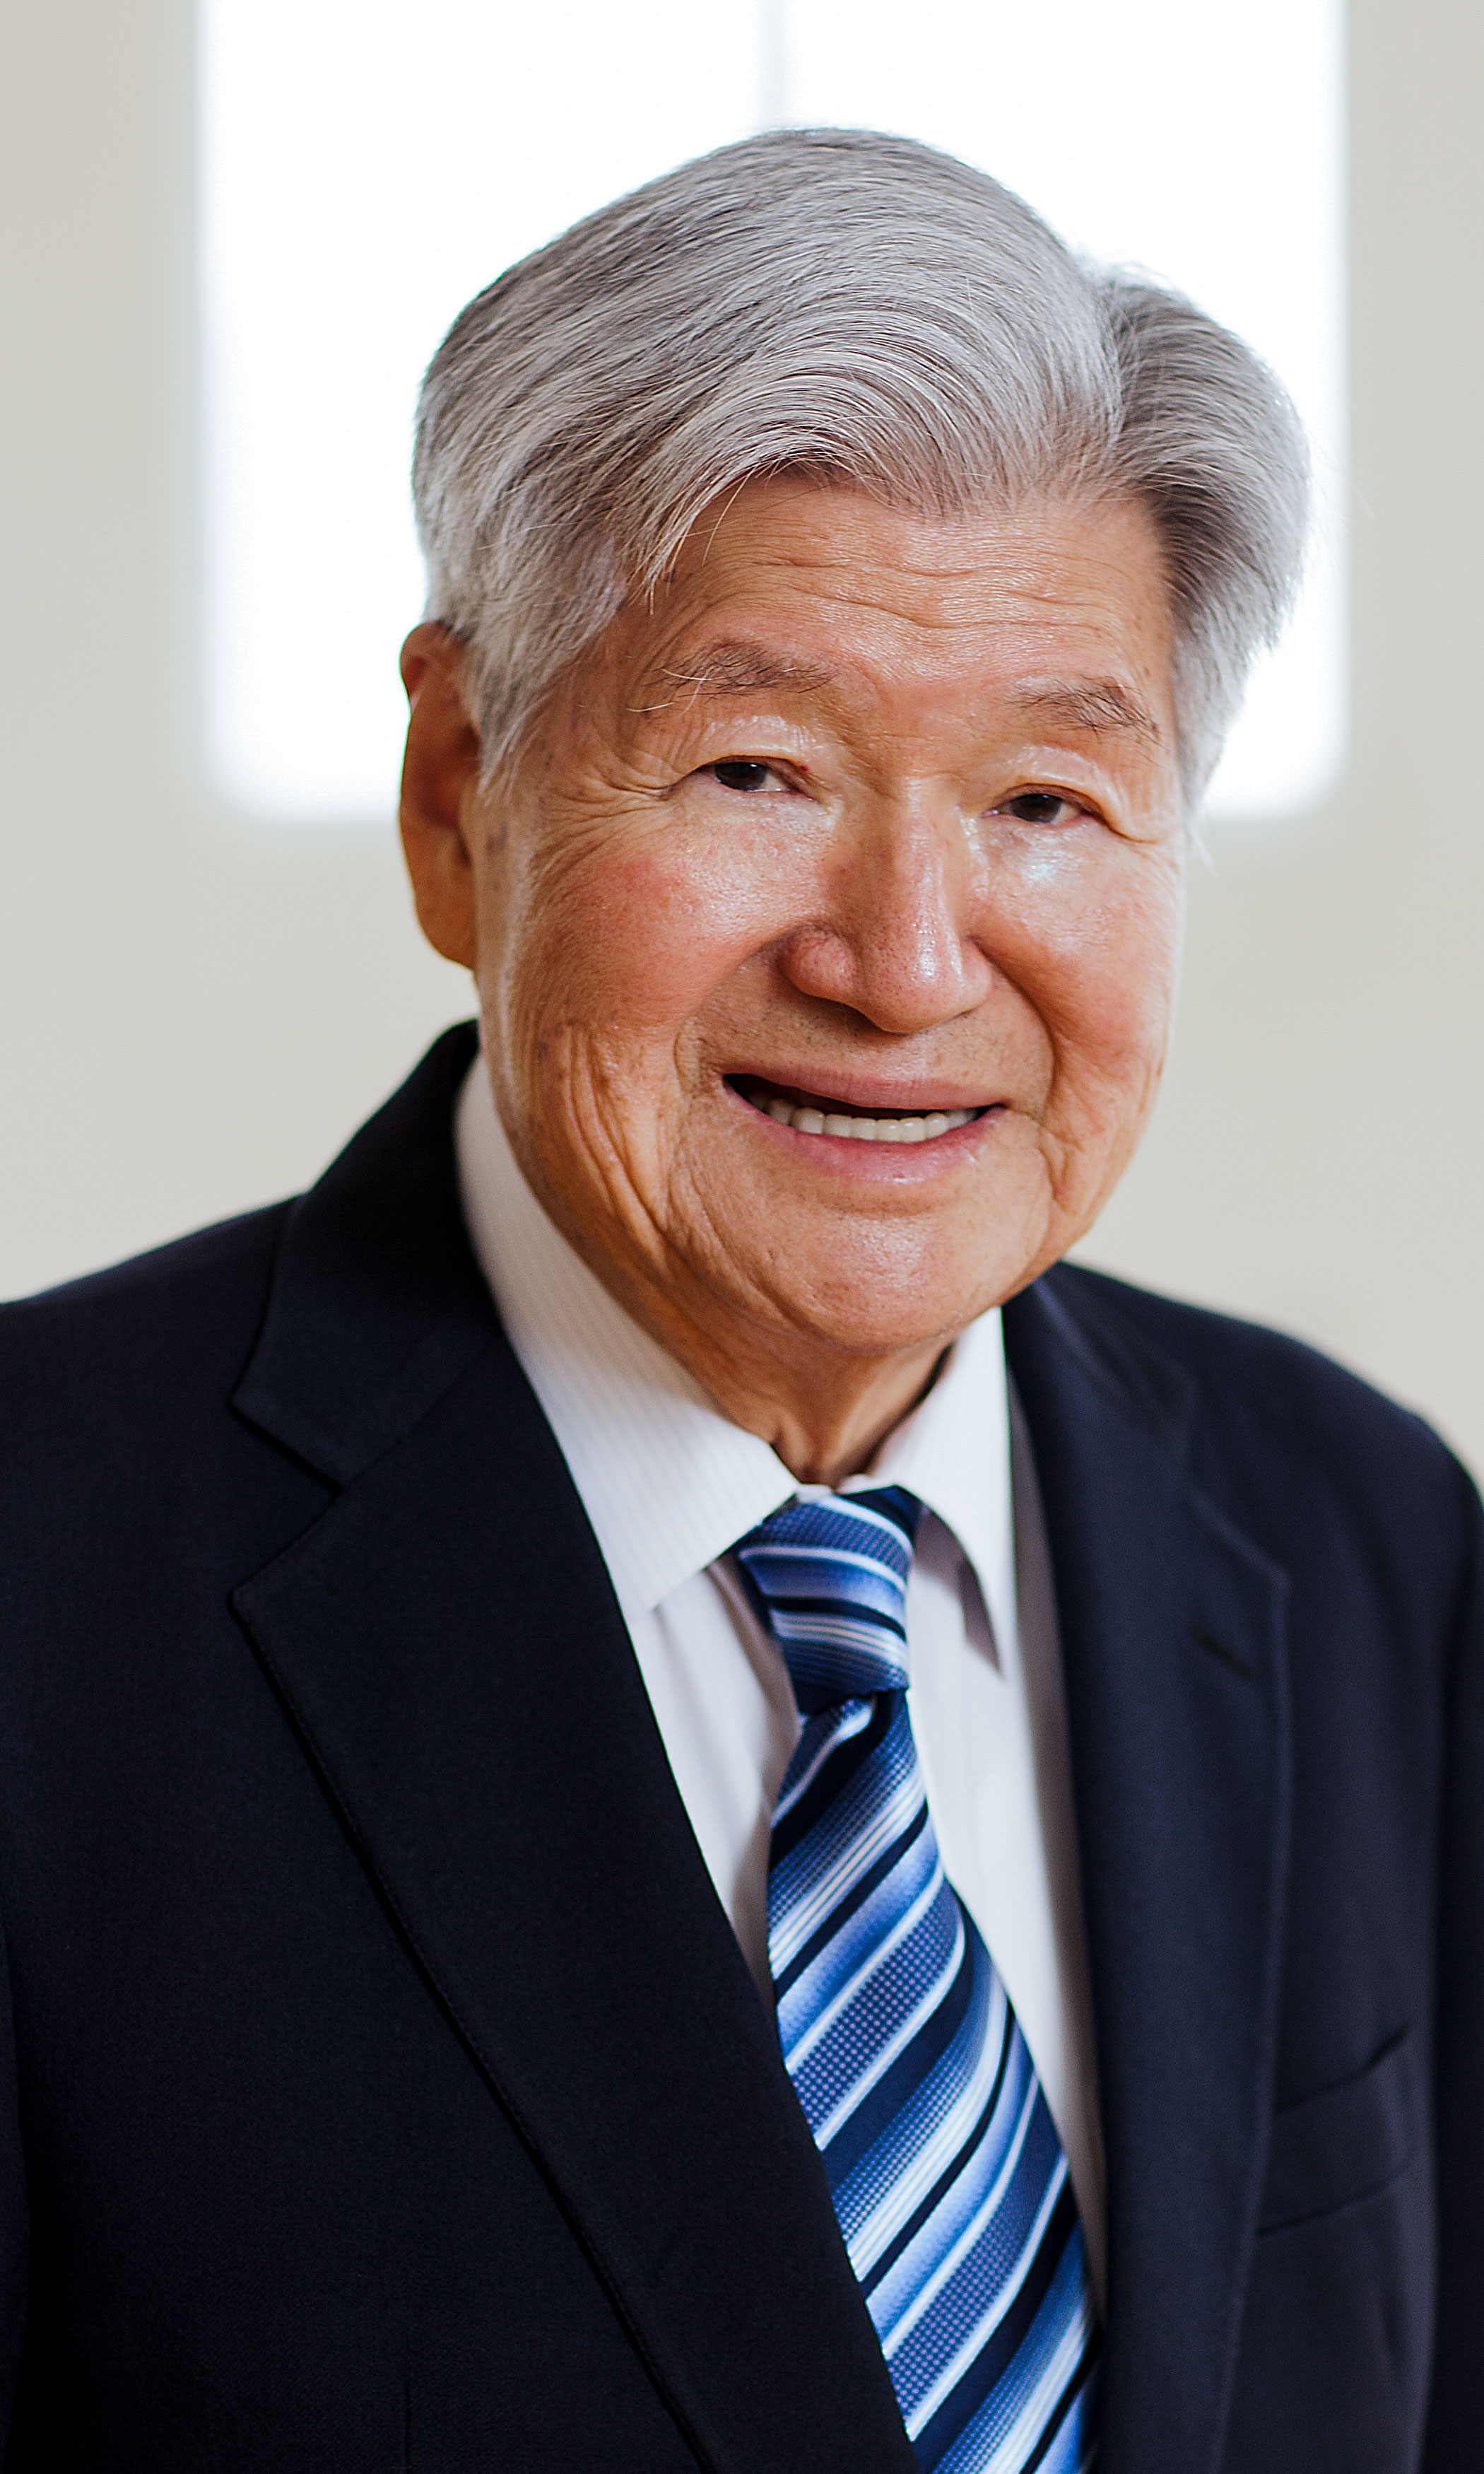 Cyrus Tang, photo courtesy of Cyrus Tang